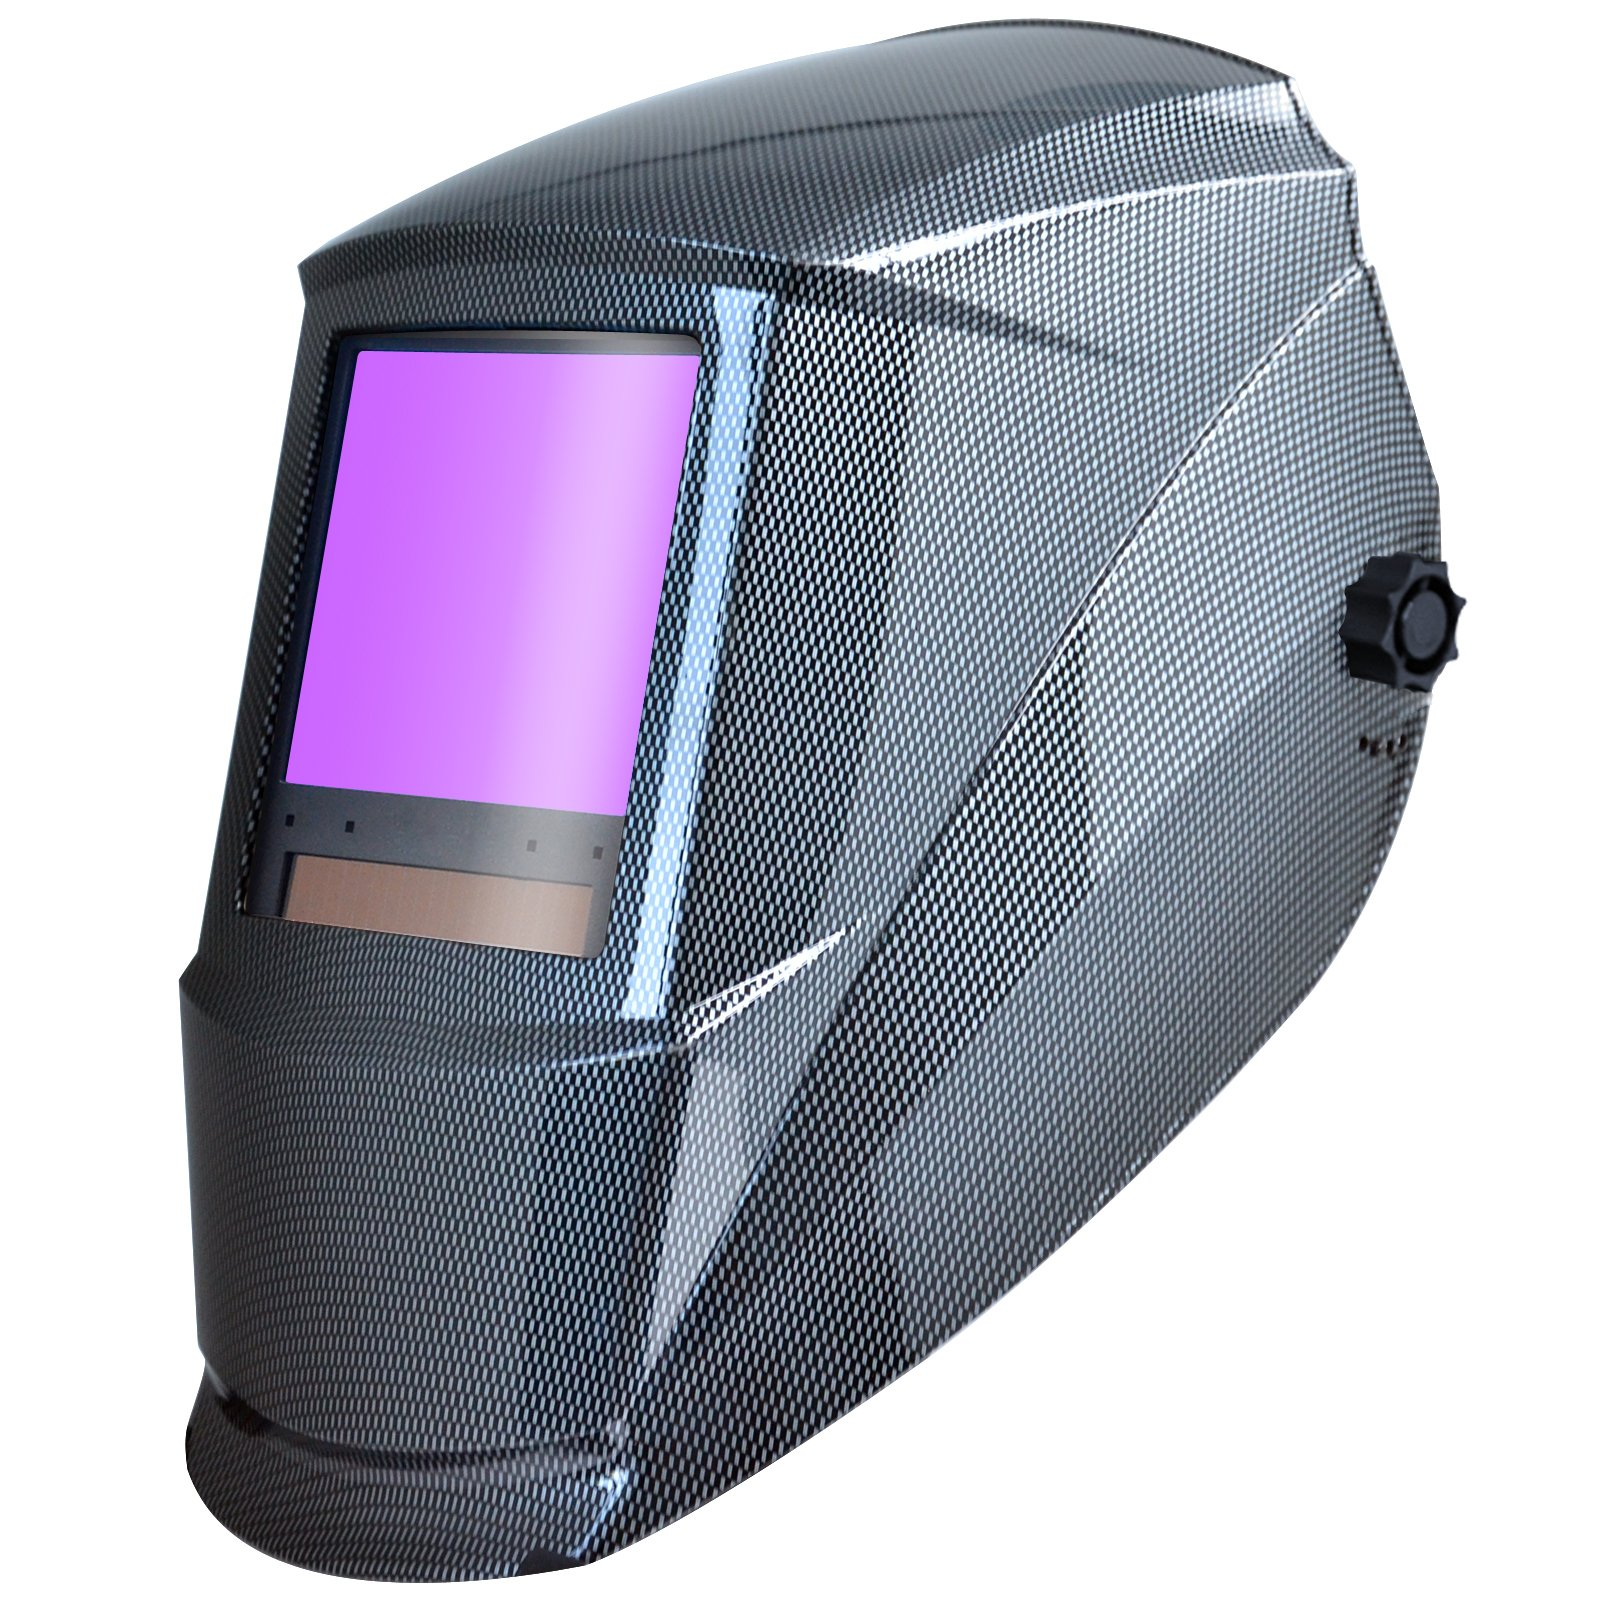 Antra Welding Helmet Auto Darkening AH7-860-001X Huge Viewing Size 3.86X3.5'' Wide Shade Range 4/5-9/9-13 Great for TIG MIG/MAG MMA Plasma, Grinding, Solar-Lithium Dual Power, 6+1 Extra Lens Covers